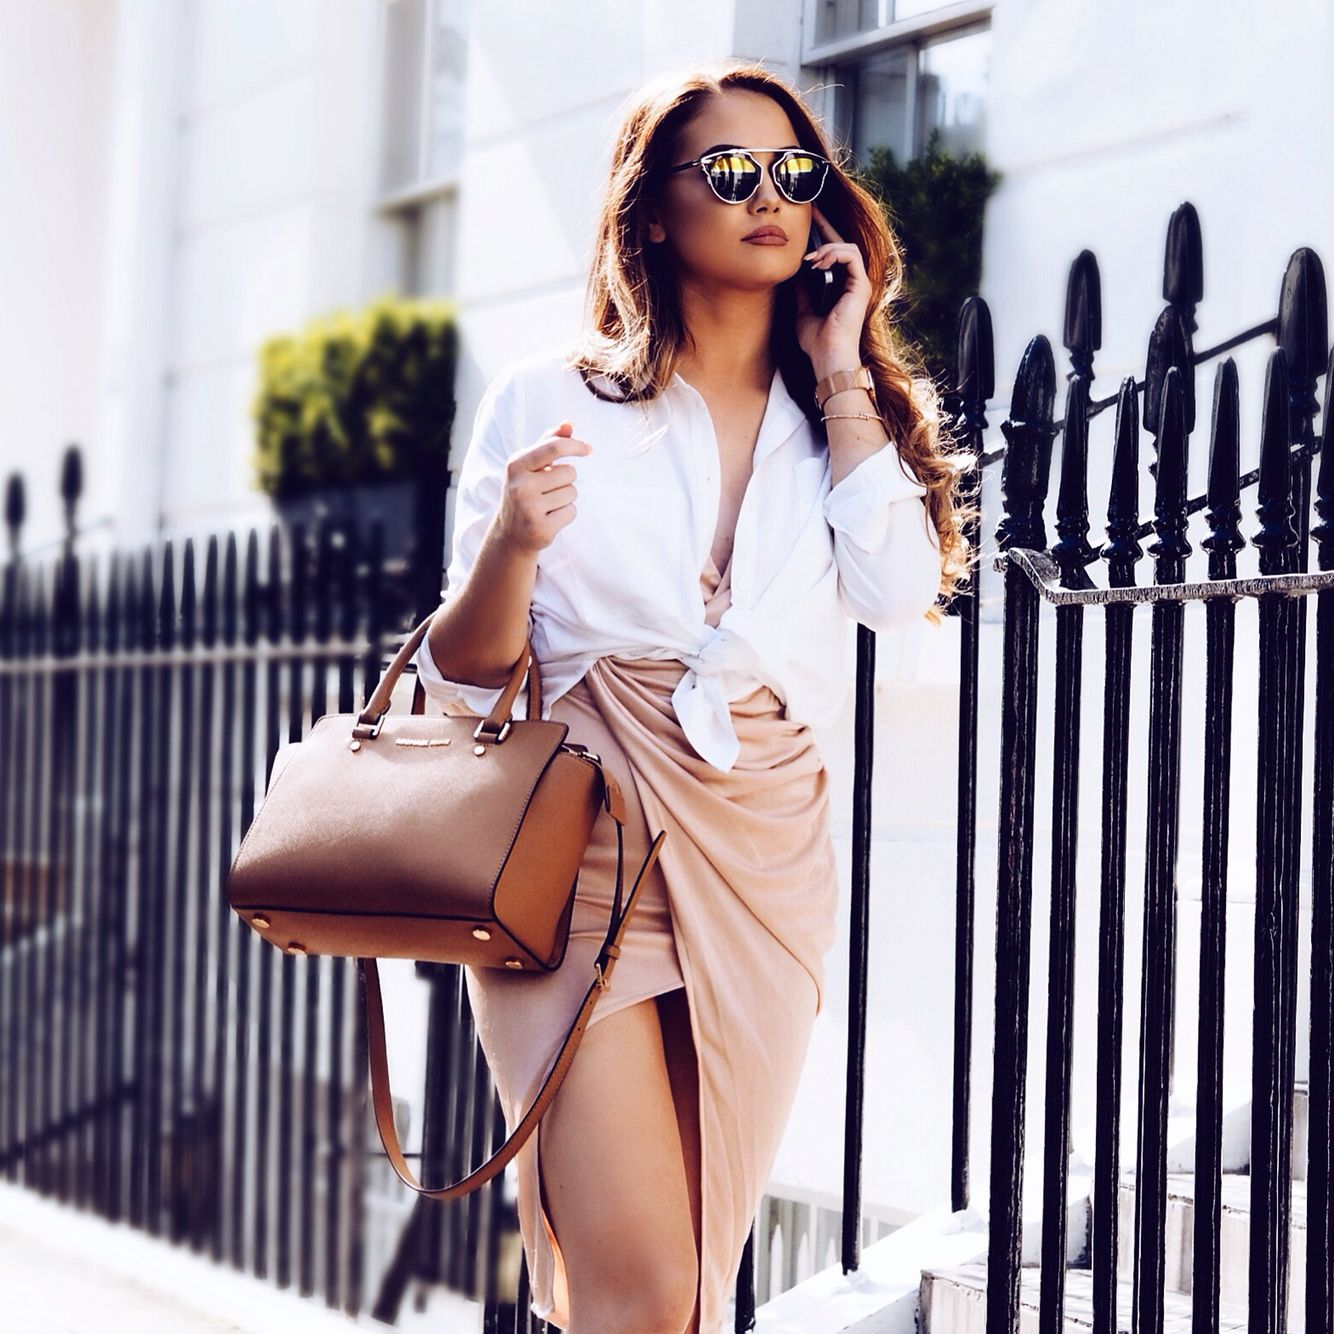 White shirt and nude skirt #blogger #fashion #fashionblogger #ukblogger #style #summerstyle #fashioninspo